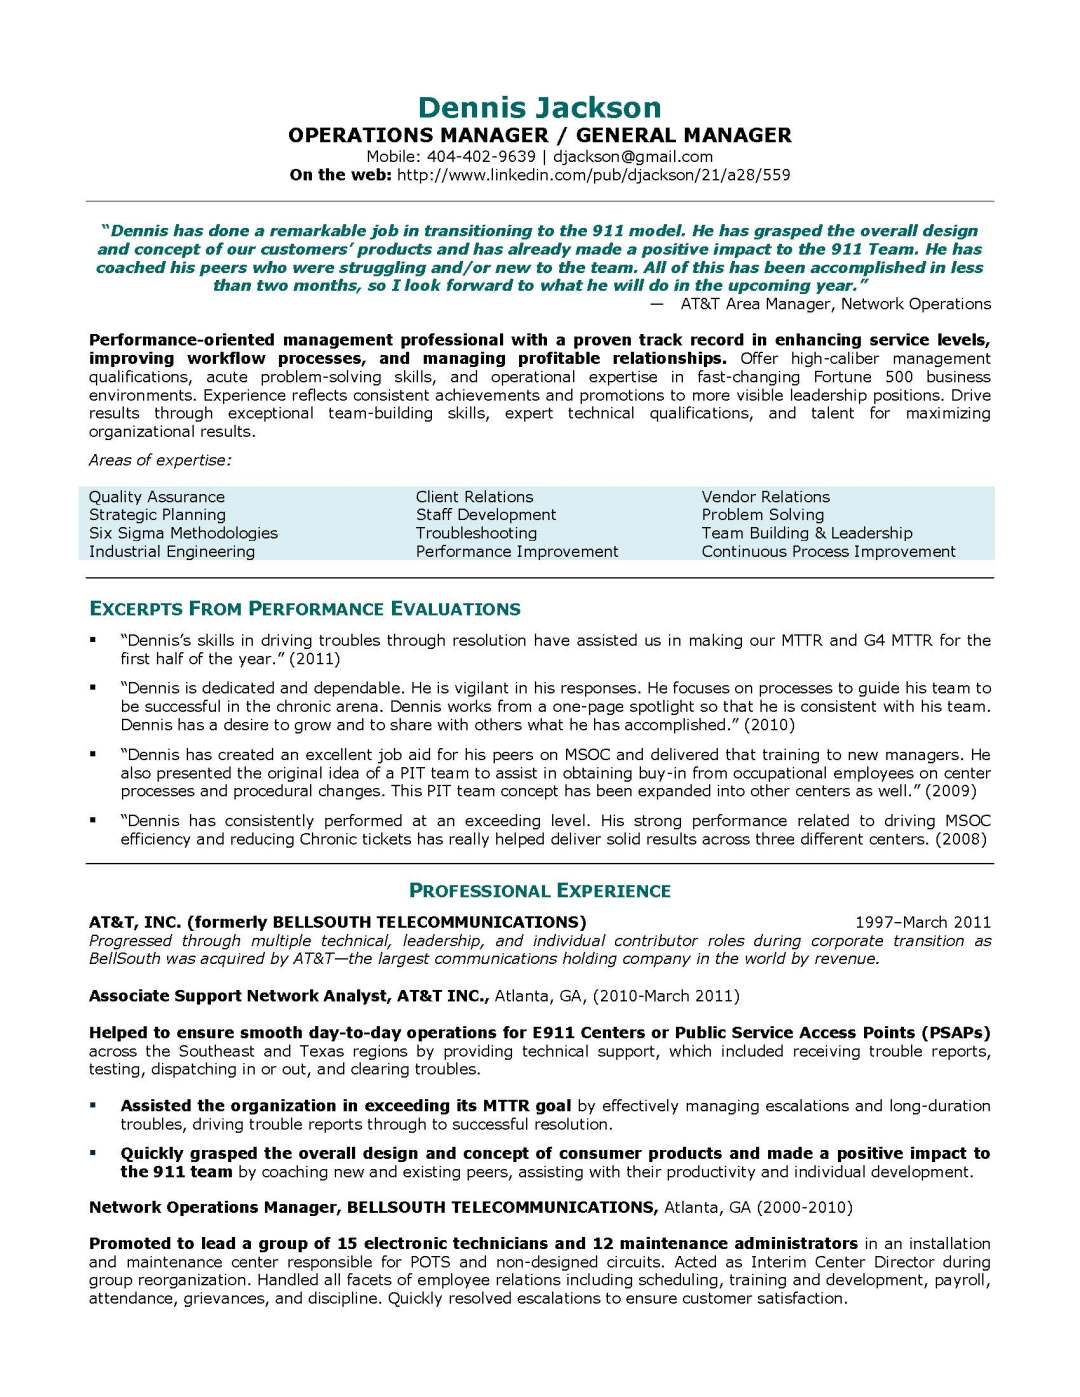 general manager resume sample, provided by Elite Resume Writing Services